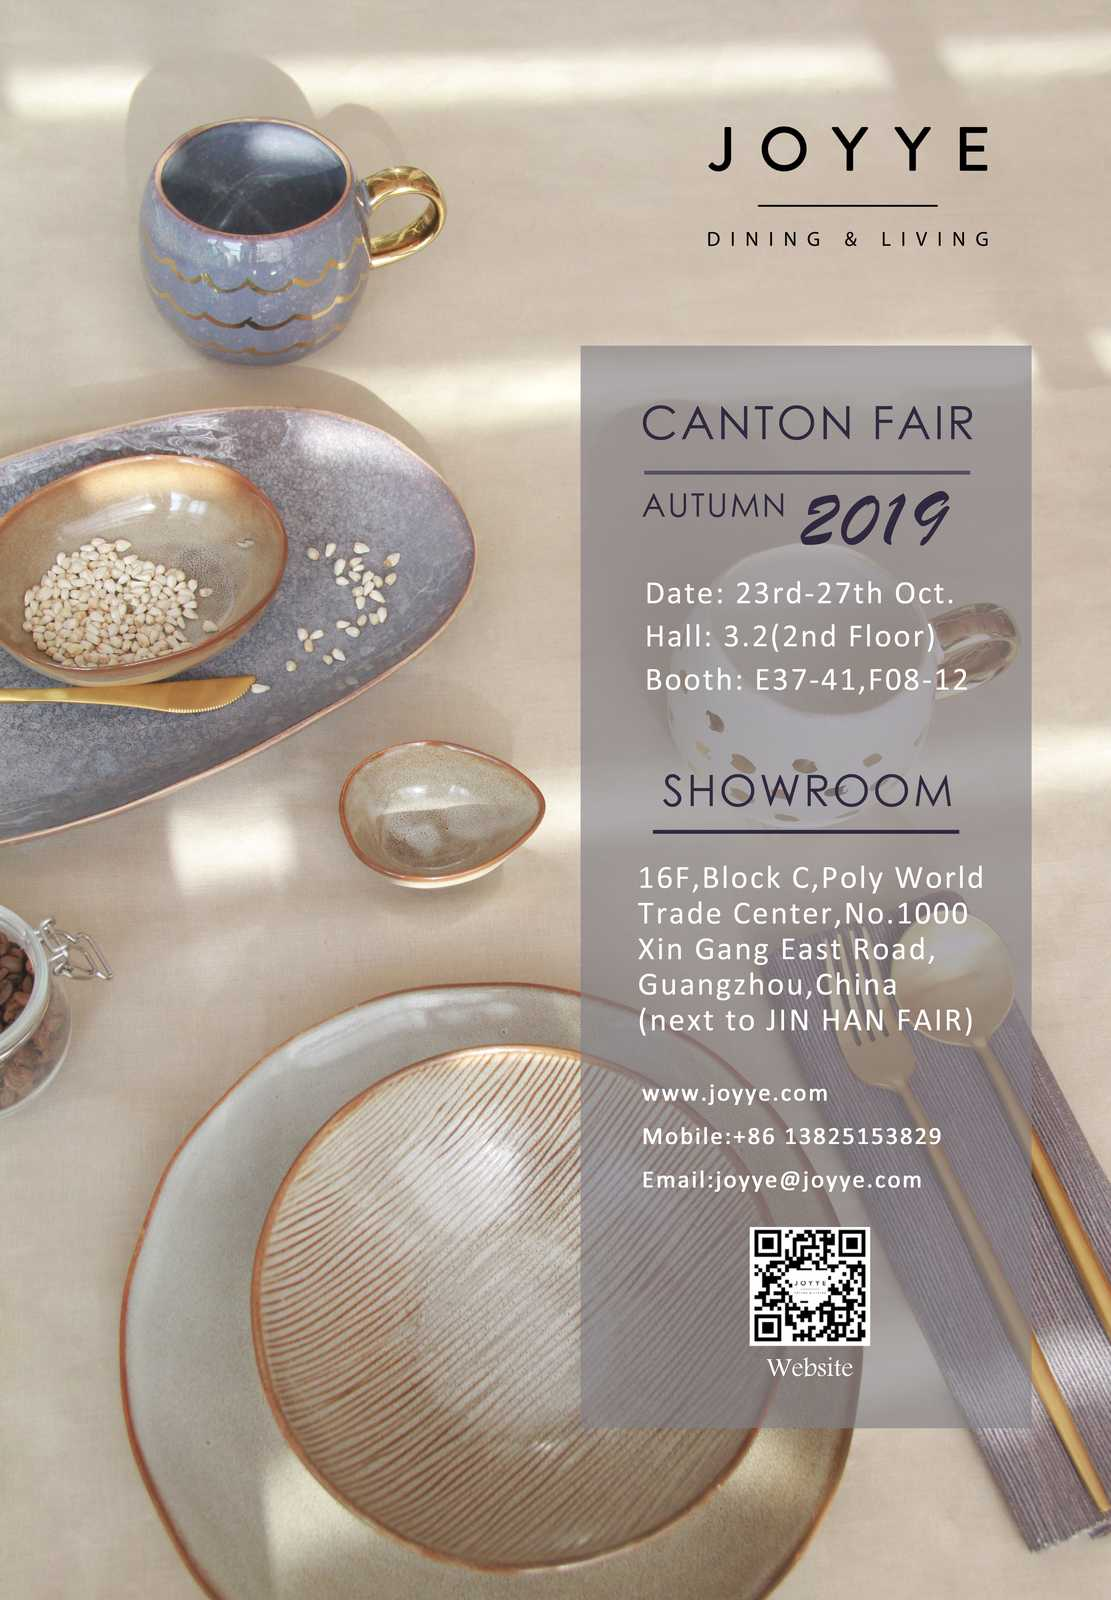 Joyye 2019 Autumn Canton Fair Invitation